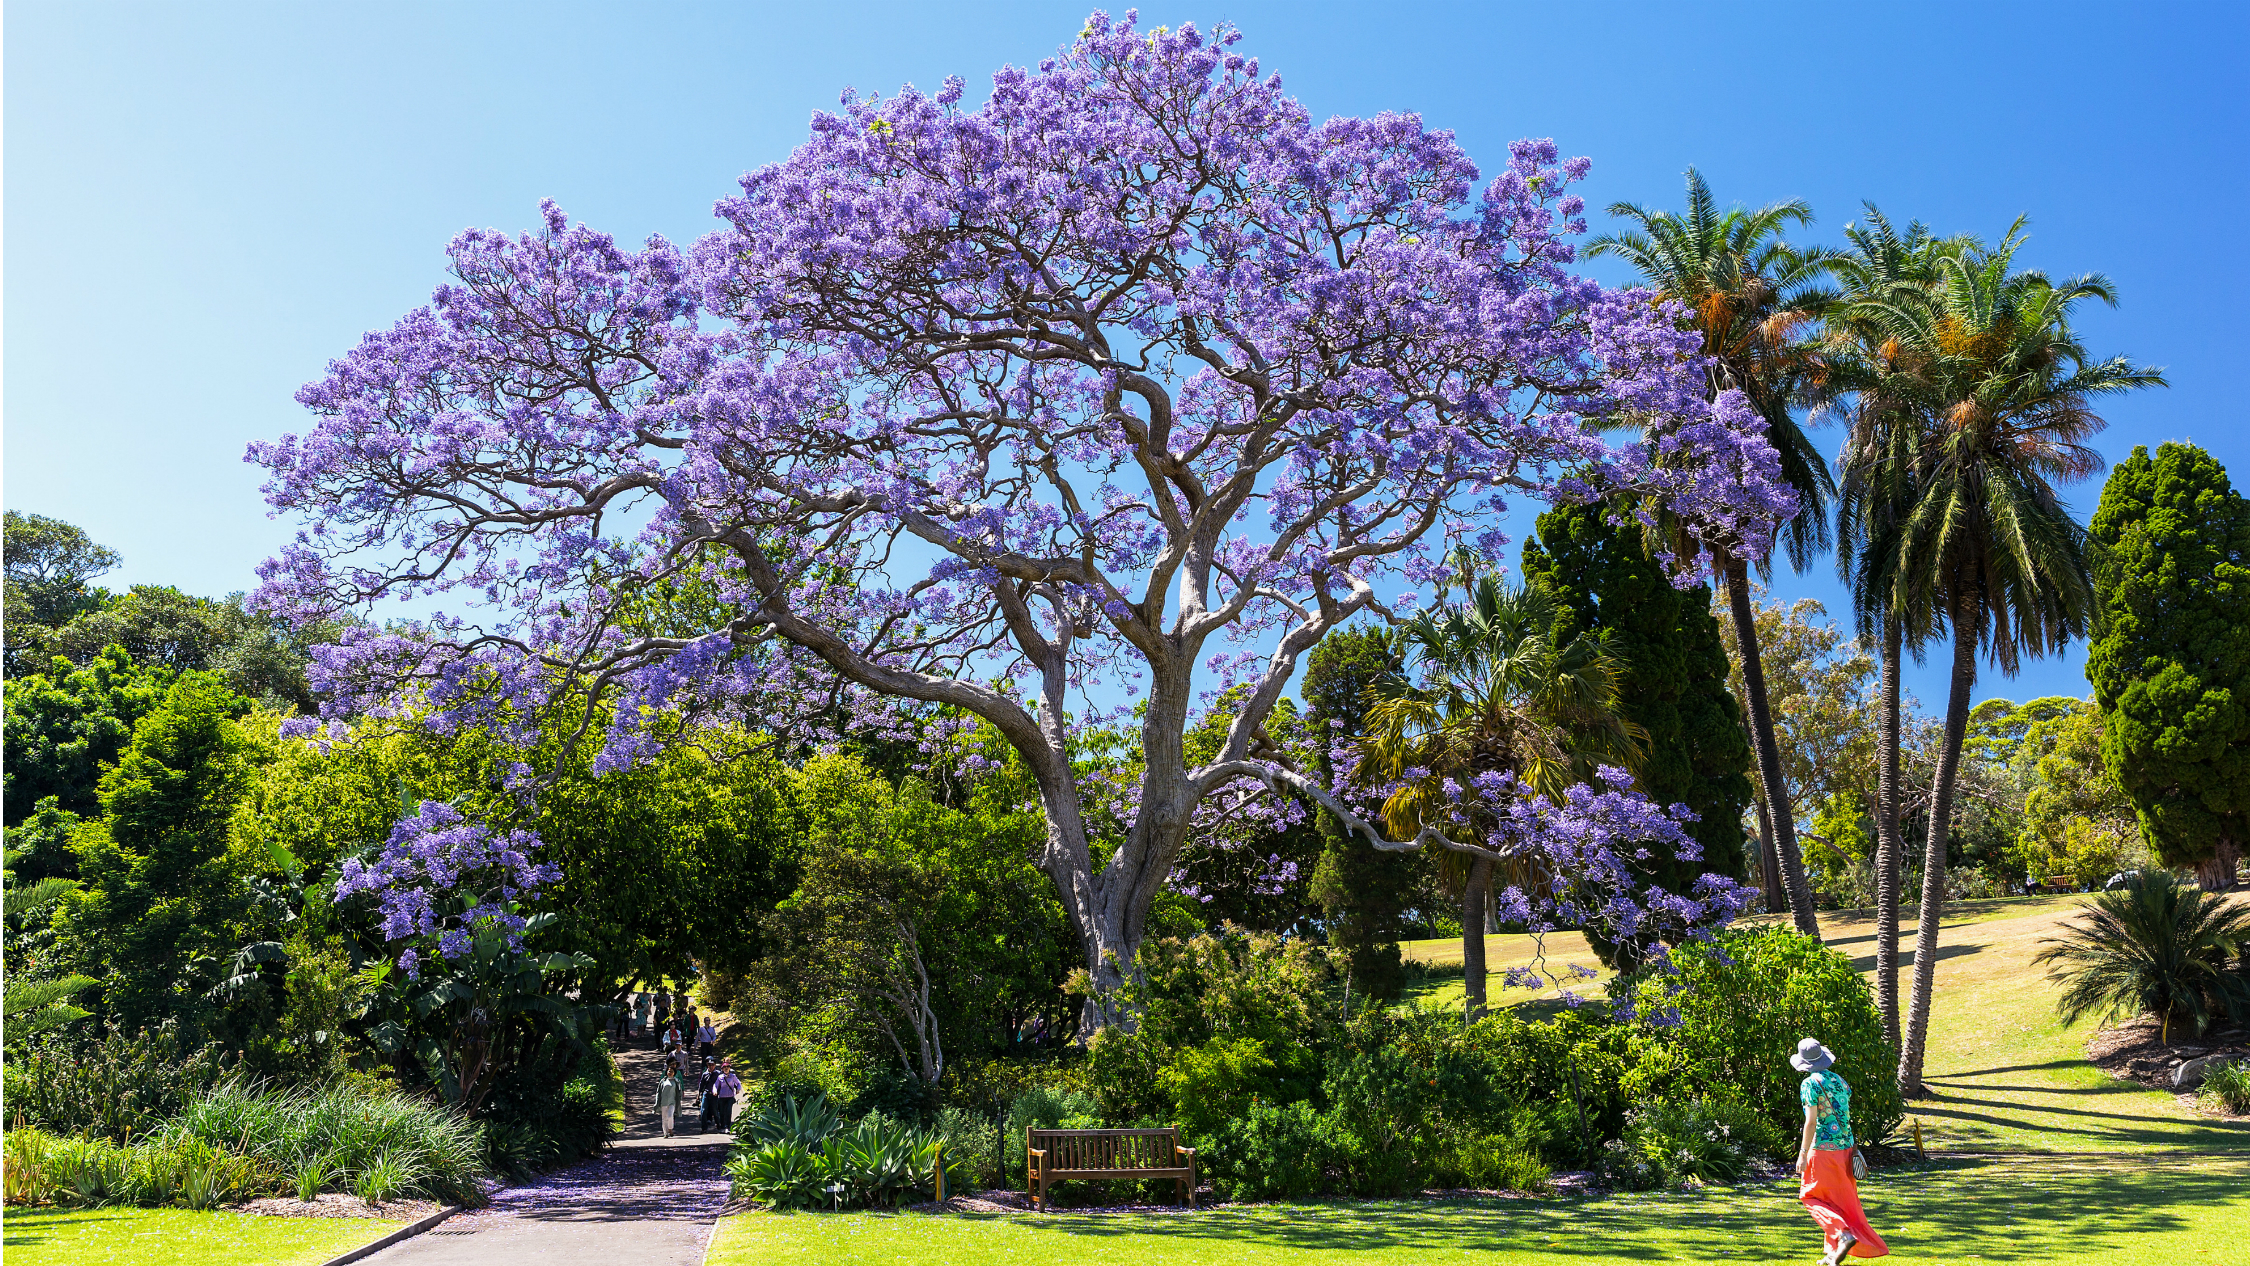 Jacaranda tress at the Royal Botanic Gardens.